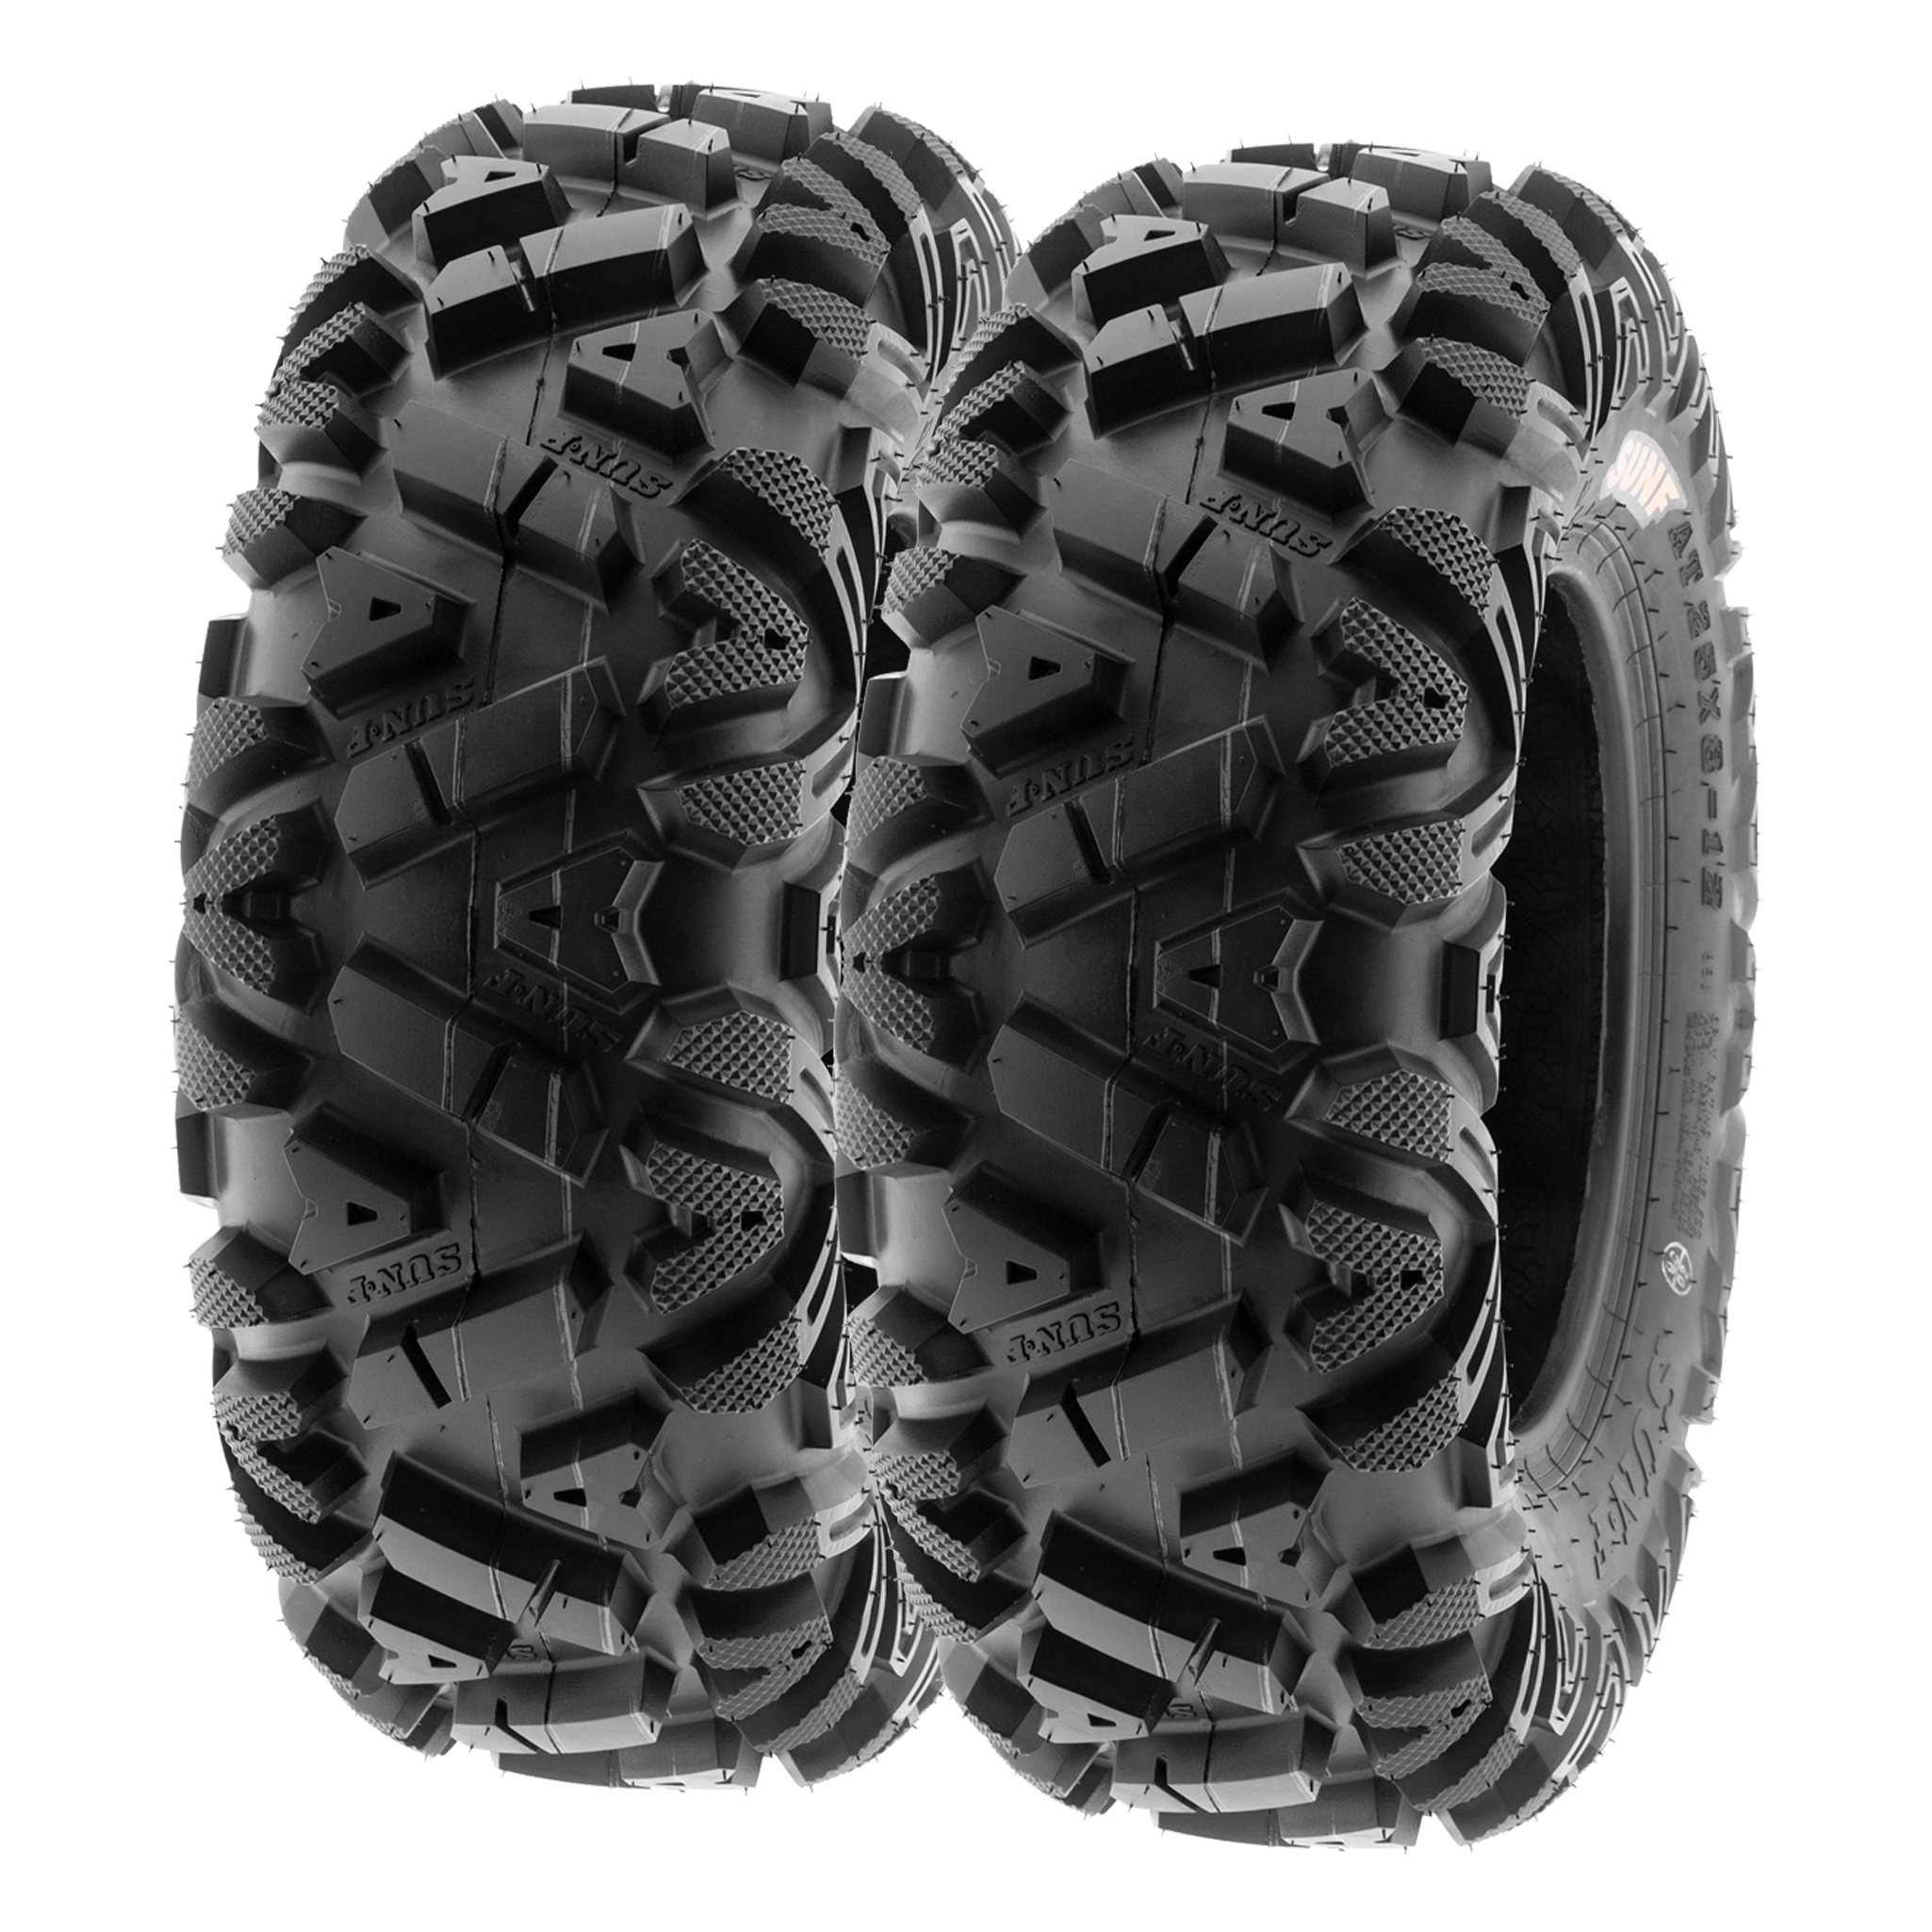 29x9-14 UTV 4x4 Polaris 1 Tire Maxxis VIPR ATV Front Rear Tire 29x9x14